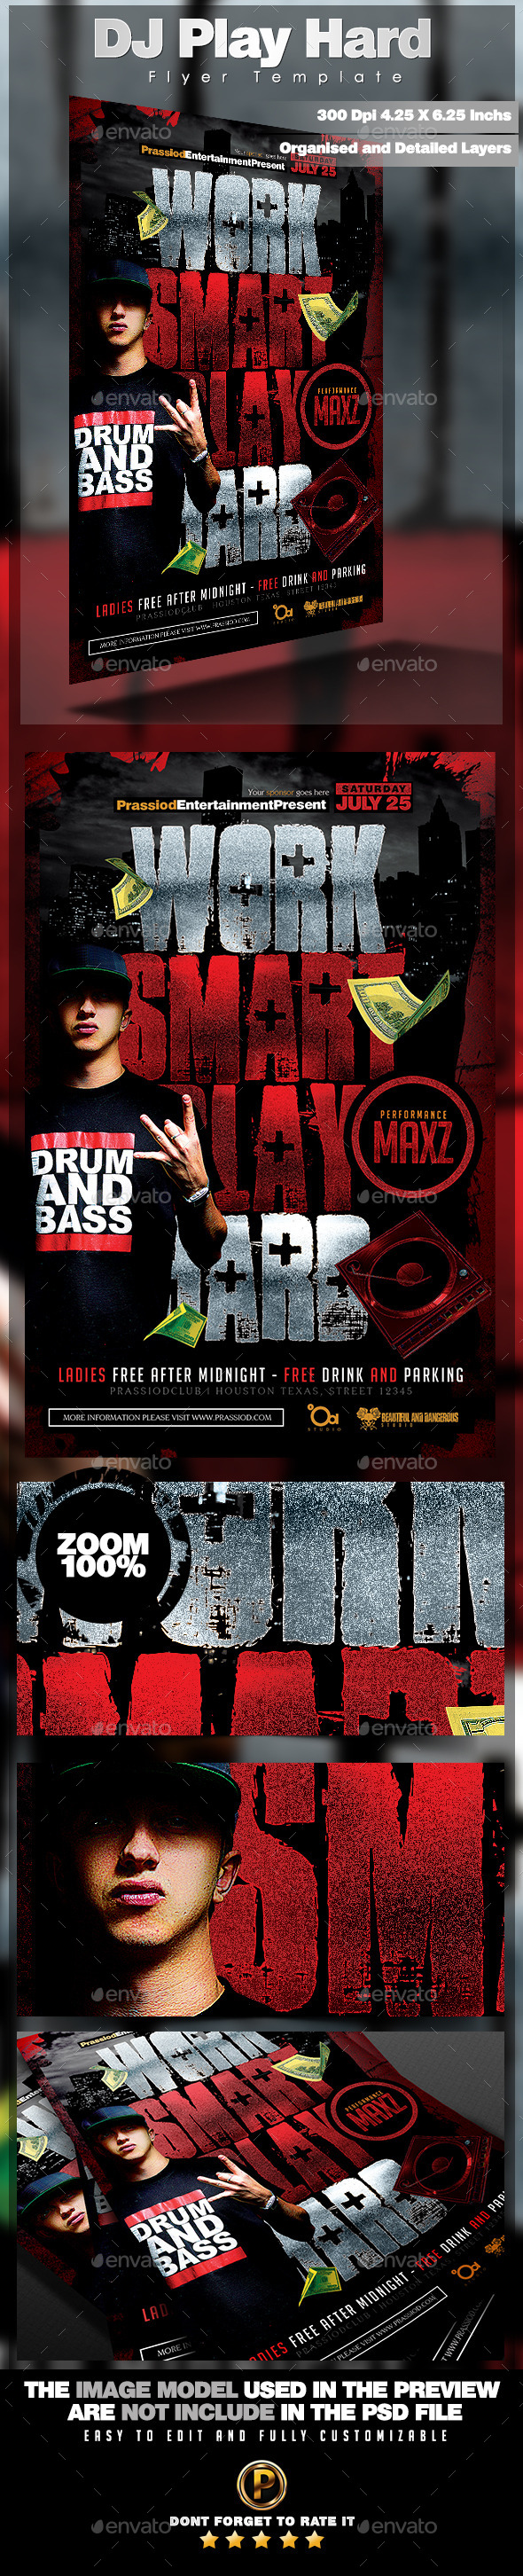 DJ Play Hard Flyer Template - Clubs & Parties Events